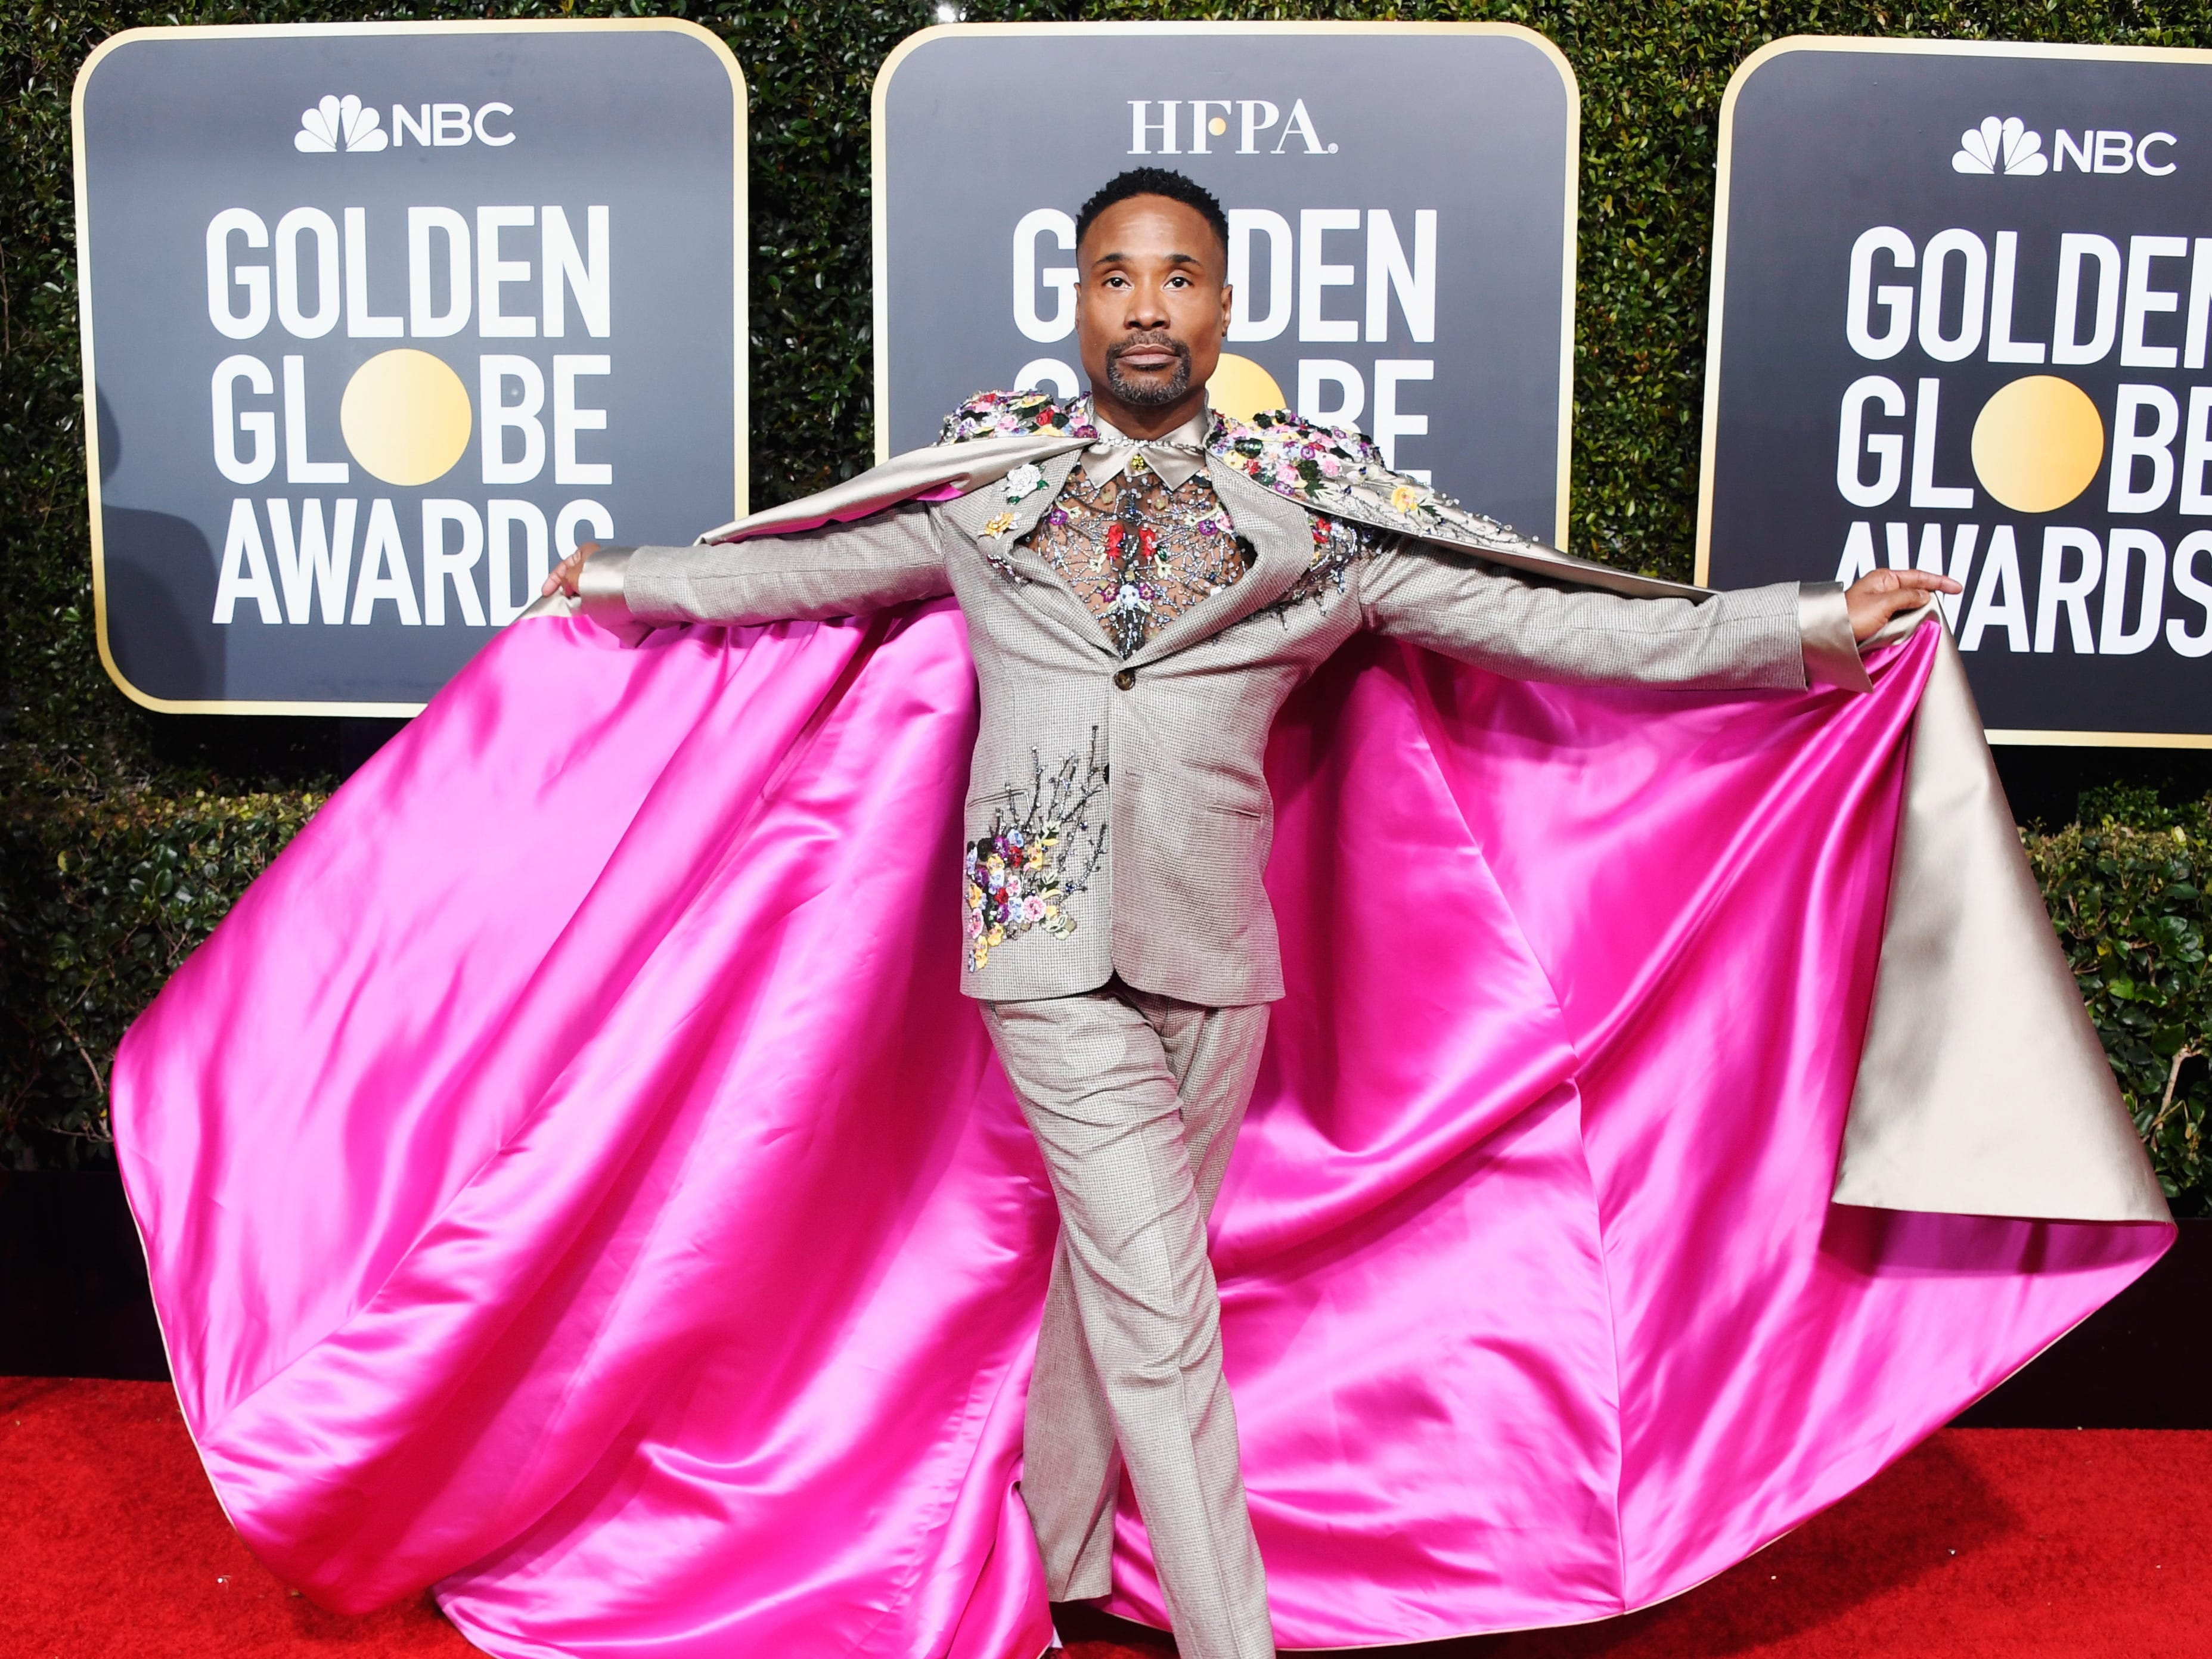 BEVERLY HILLS, CA - JANUARY 06:  Billy Porter attends the 76th Annual Golden Globe Awards at The Beverly Hilton Hotel on January 6, 2019 in Beverly Hills, California.  (Photo by Frazer Harrison/Getty Images) ORG XMIT: 775277757 ORIG FILE ID: 1078647500